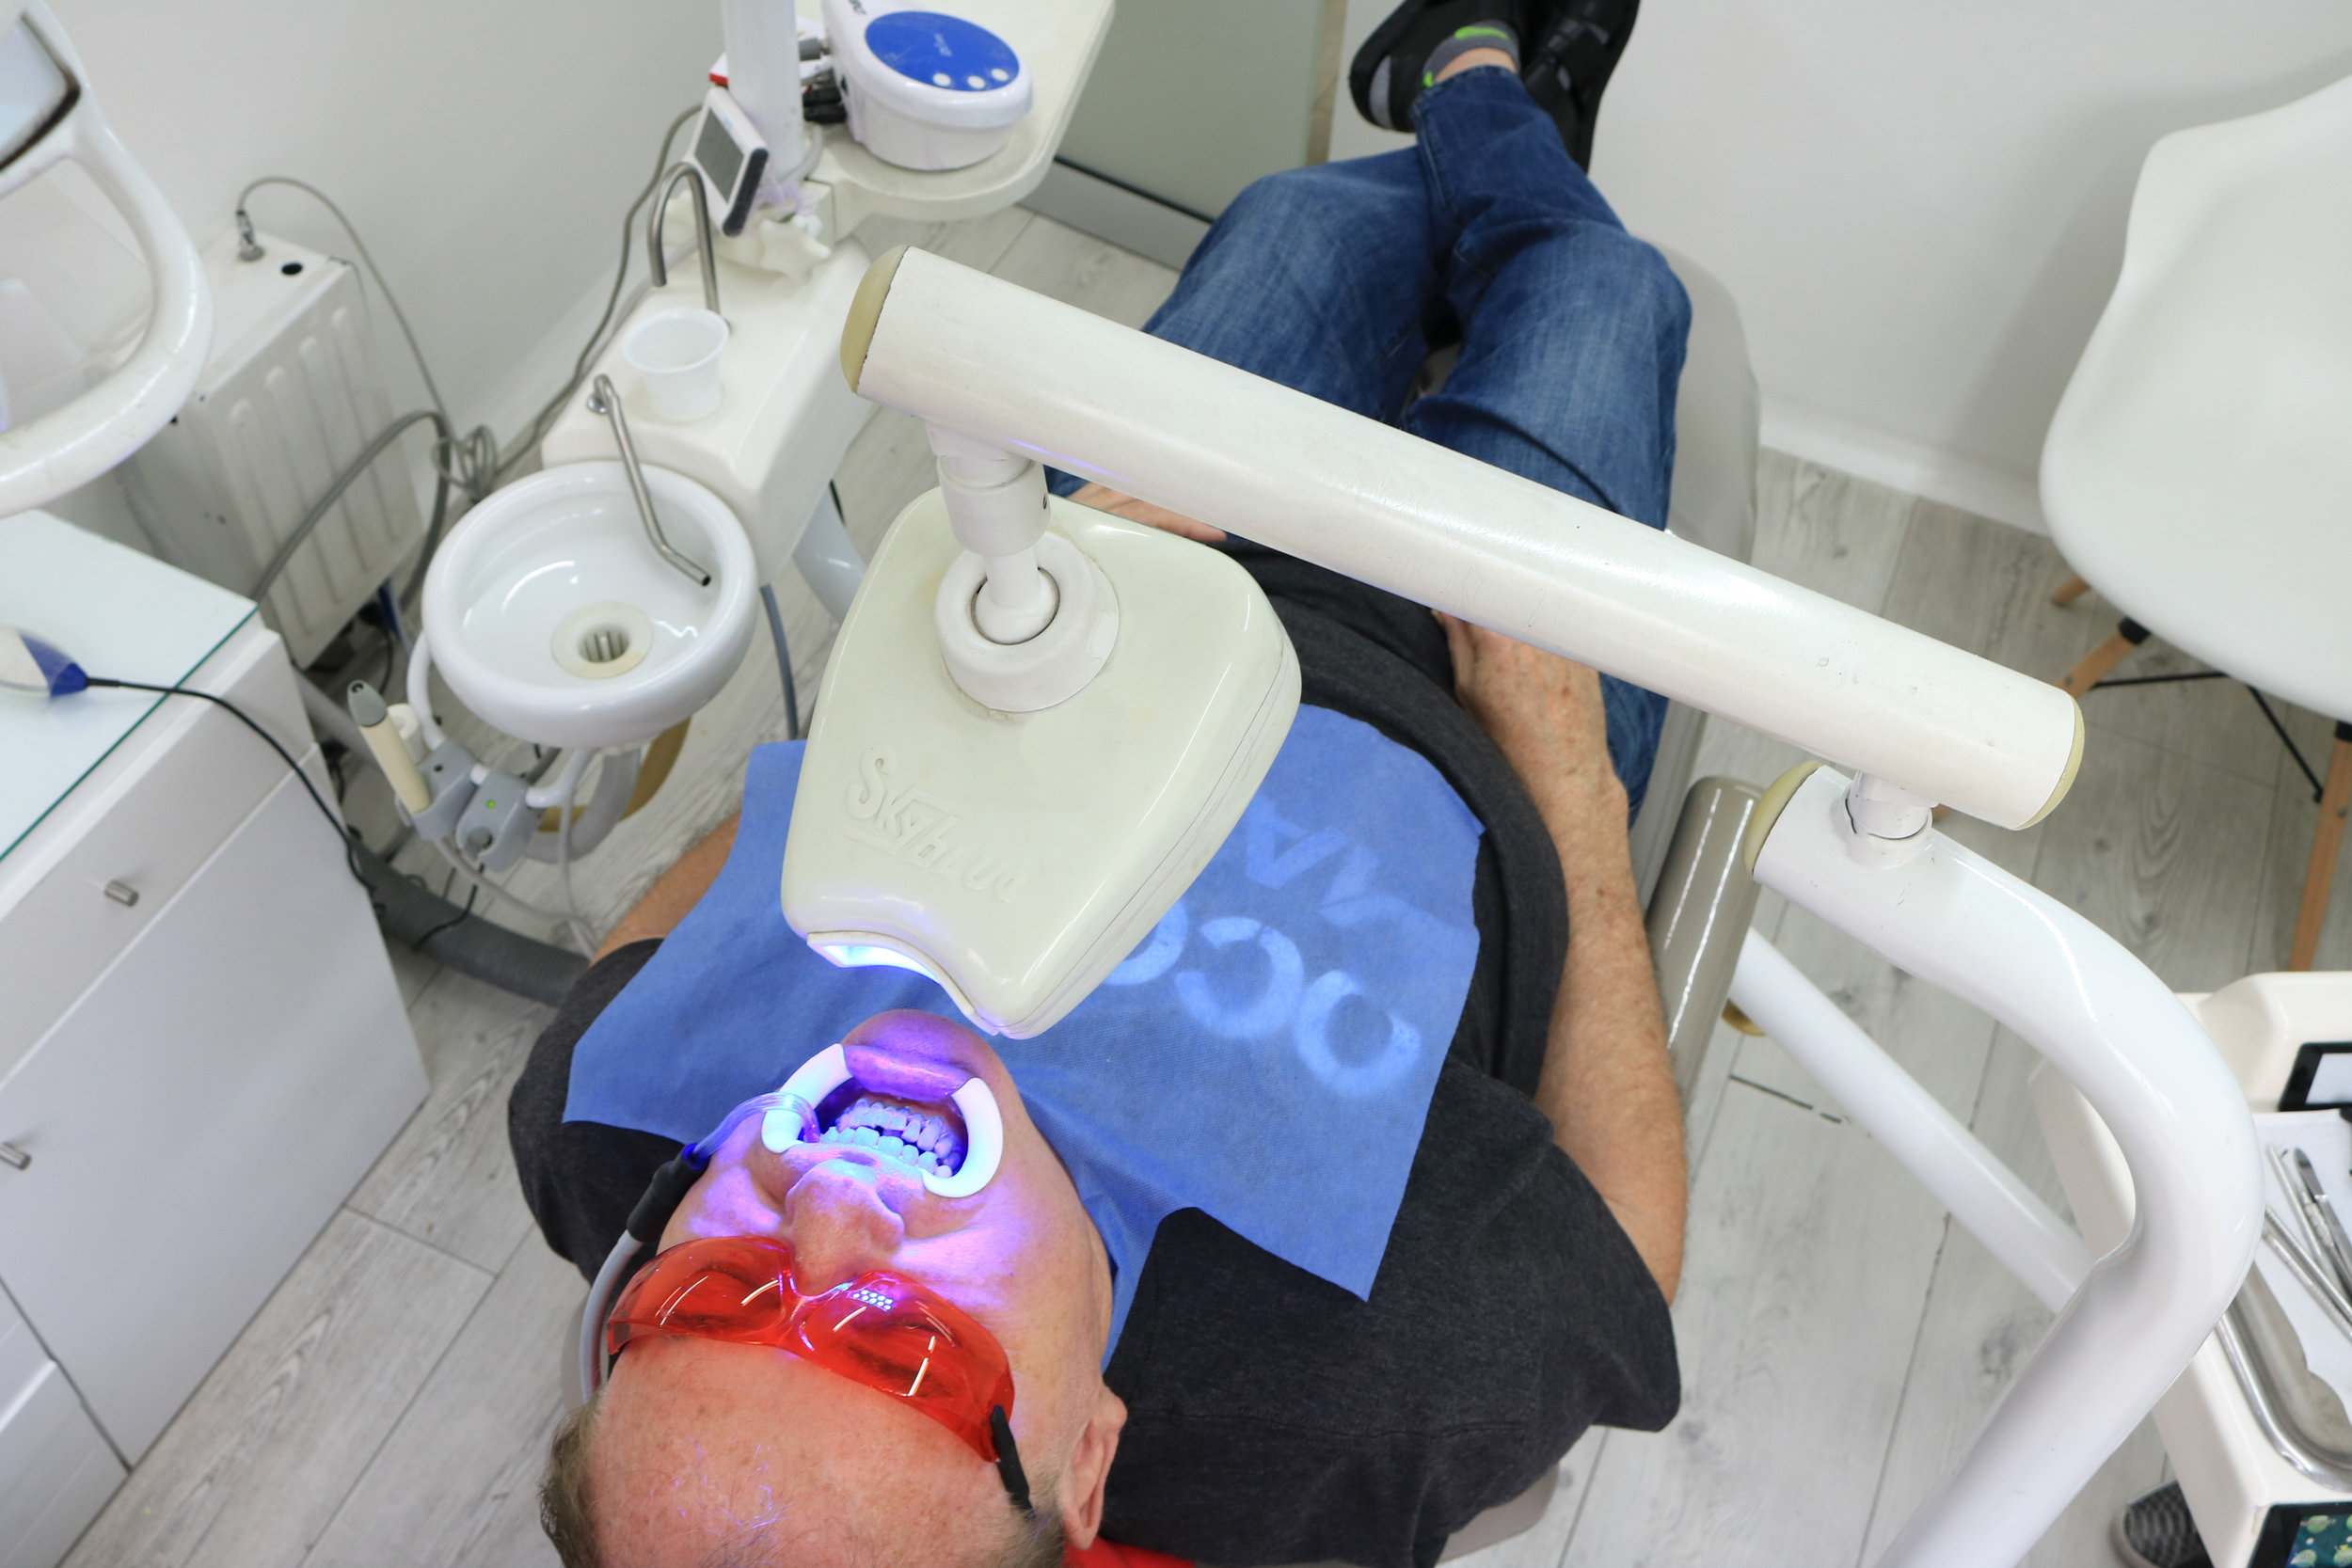 Rod and Dr. Johana Ossa - How To Find The Best Dentist in Medellin For Your Dental Work